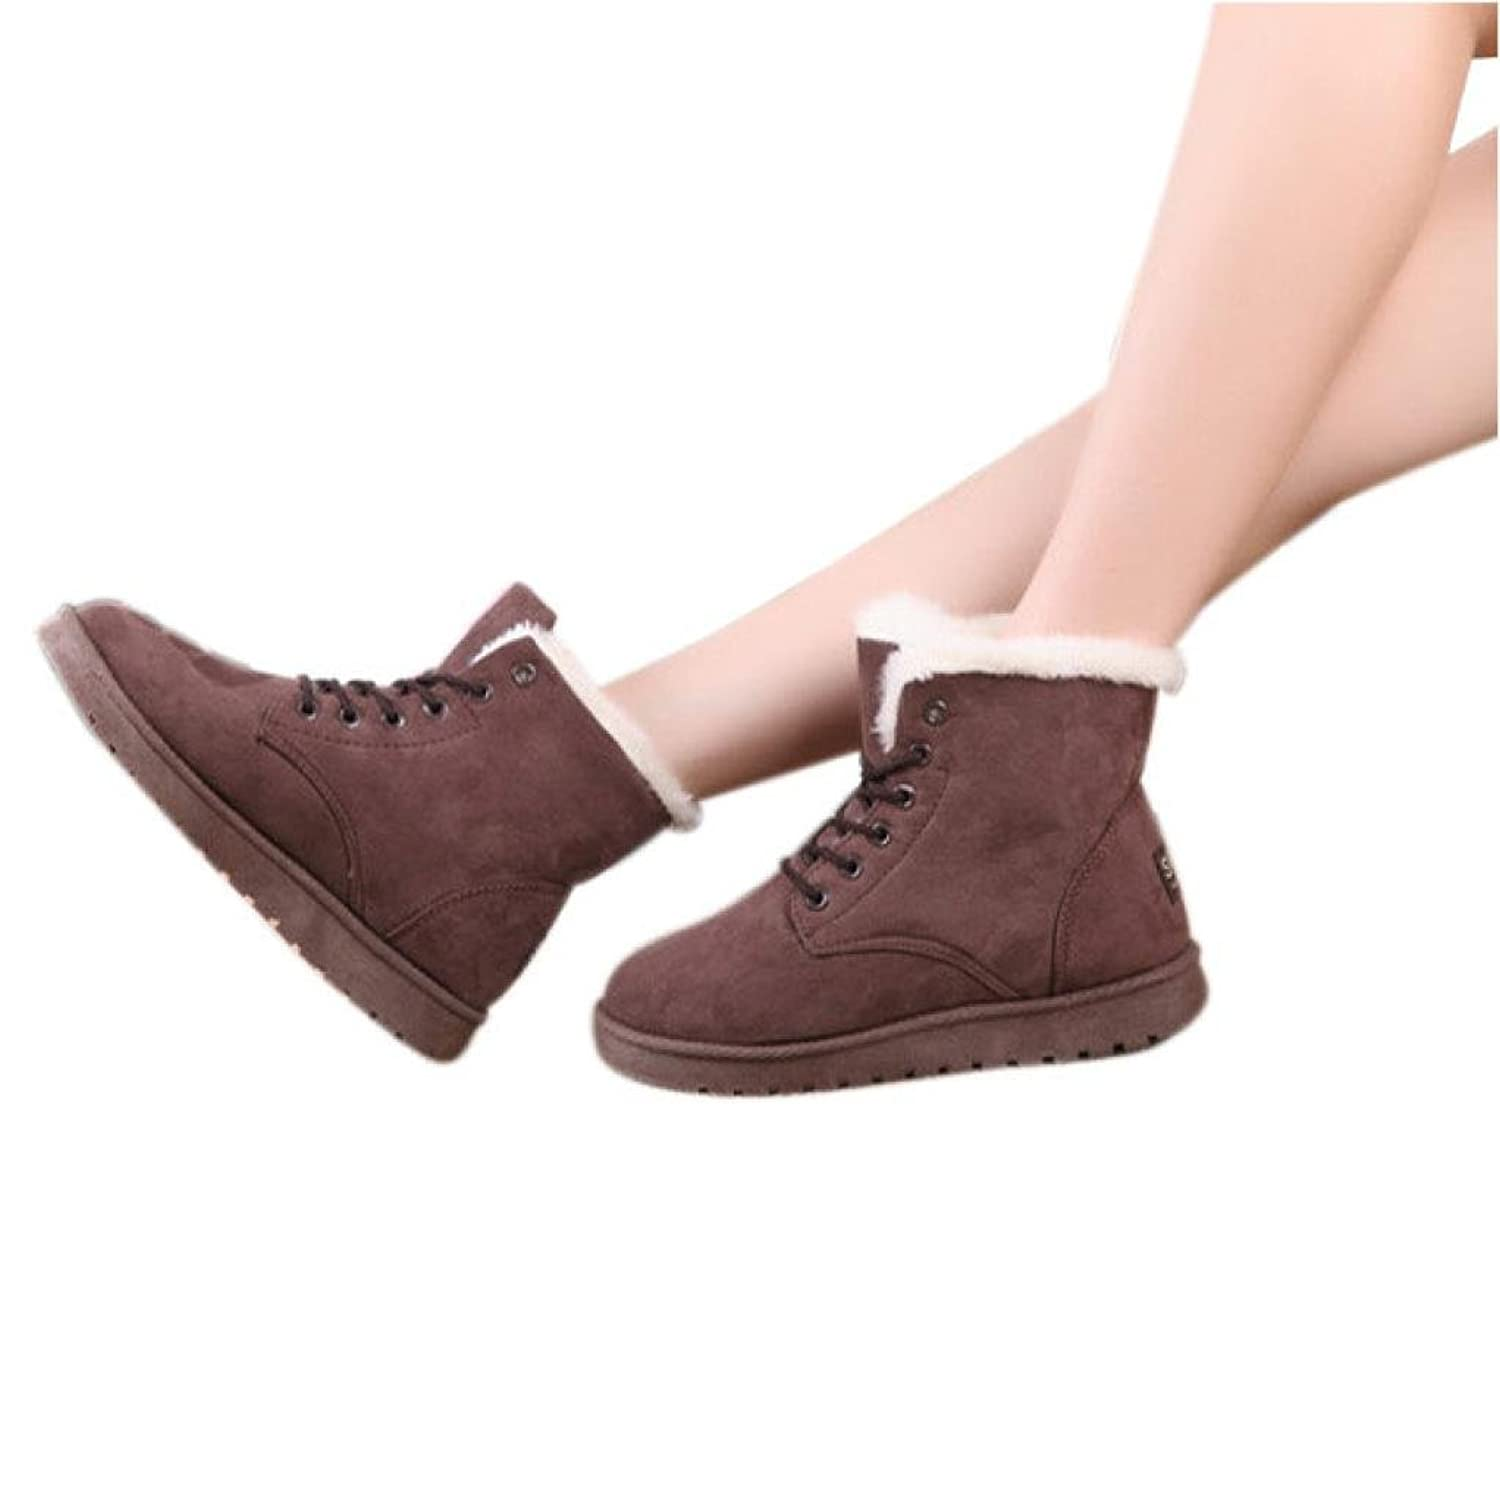 ABC® Women Ladies Home Snow Bootvinculum Female Warm Shoes